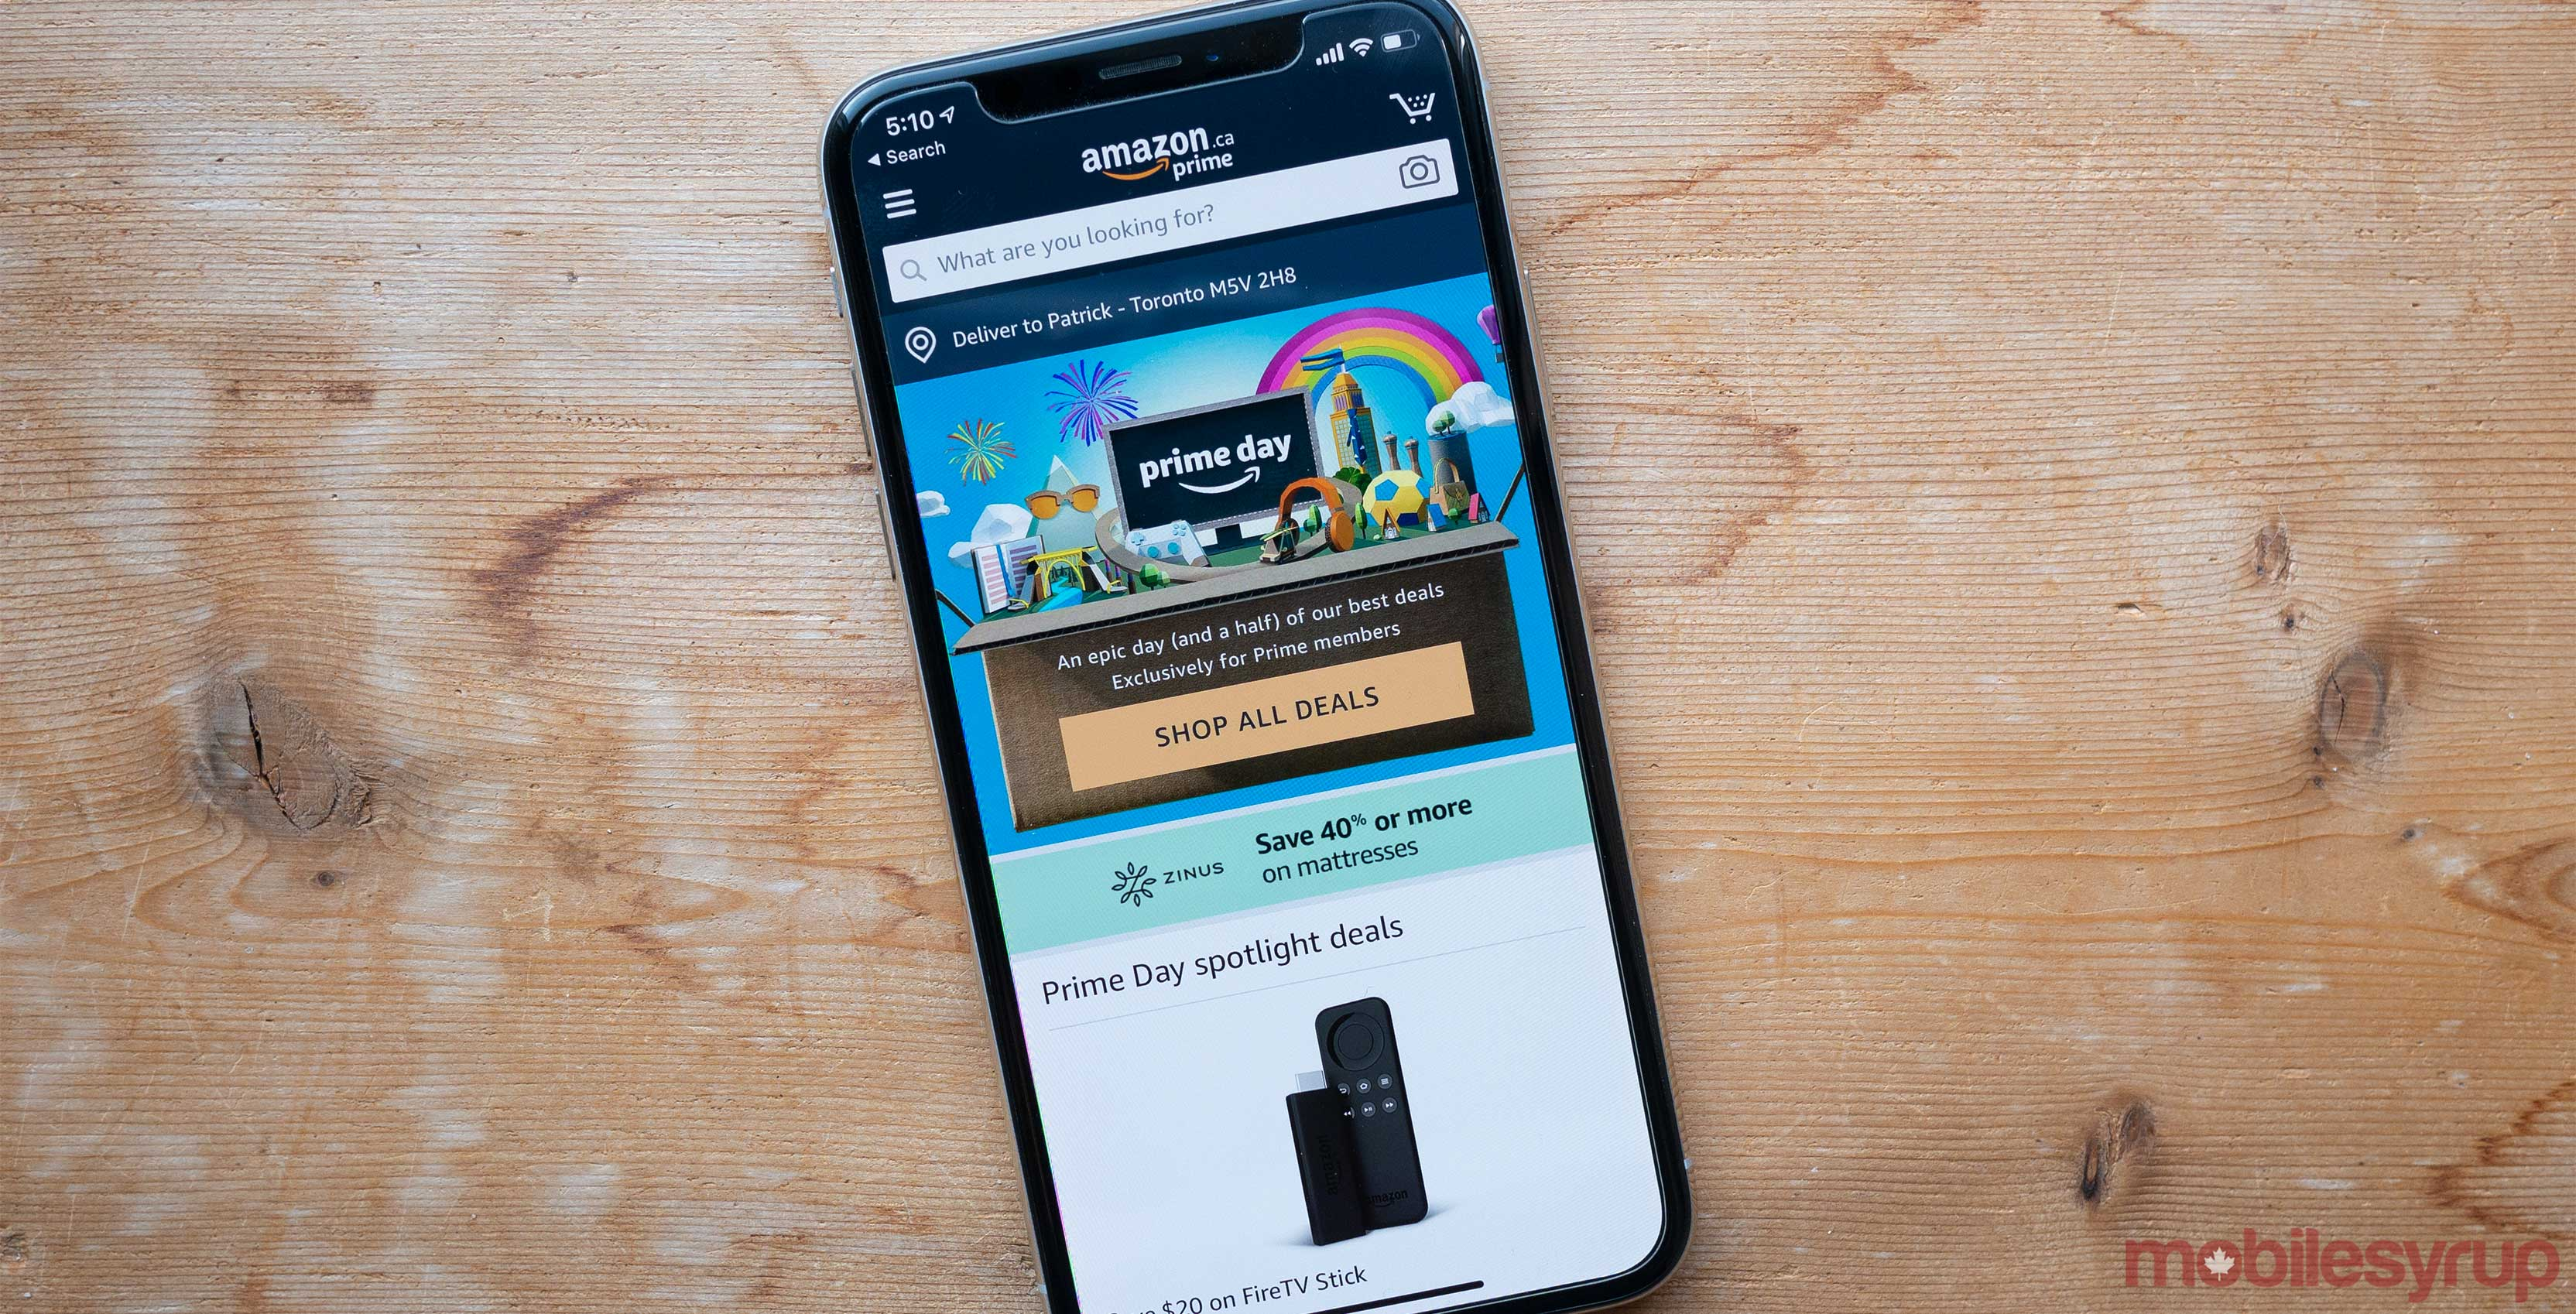 Amazon Prime Day is happening in Canada on July 15th for 48-hours